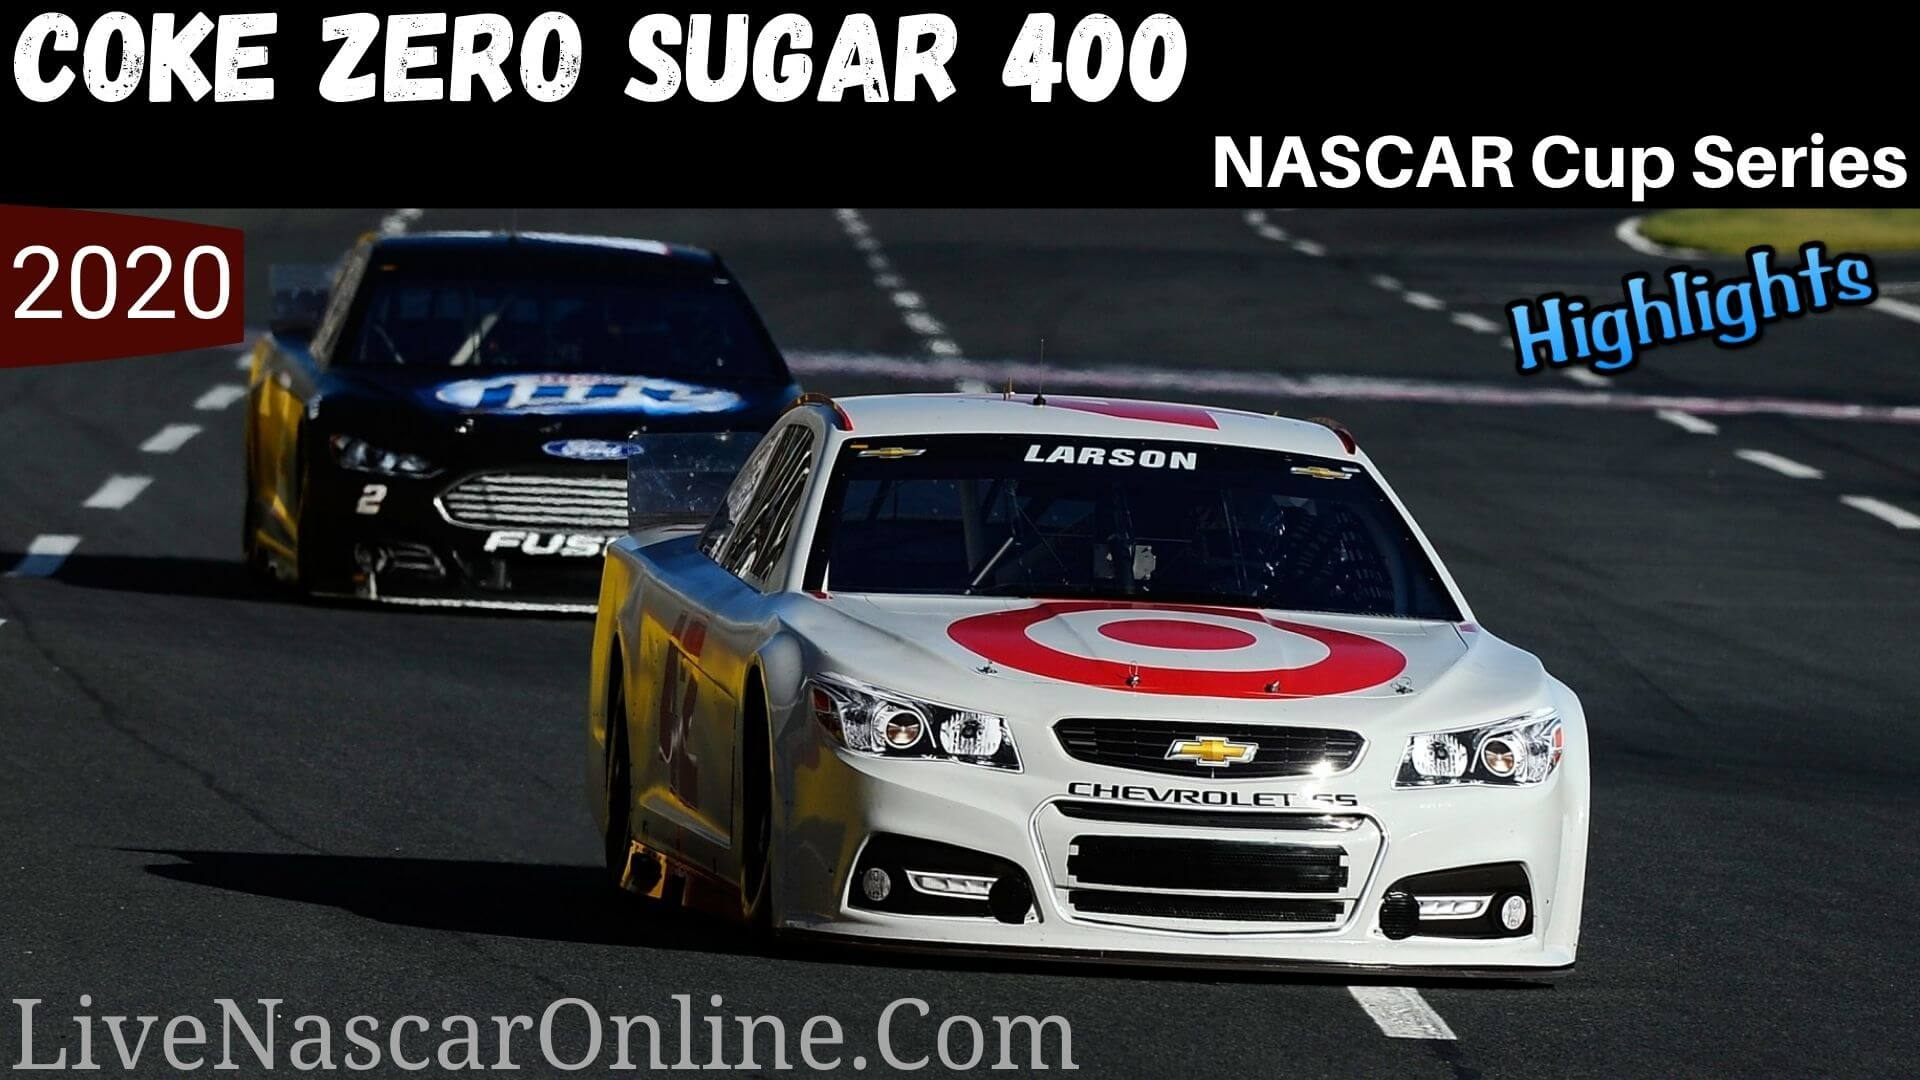 Coke Zero Sugar 400 Nascar Cup Series Highlights 2020